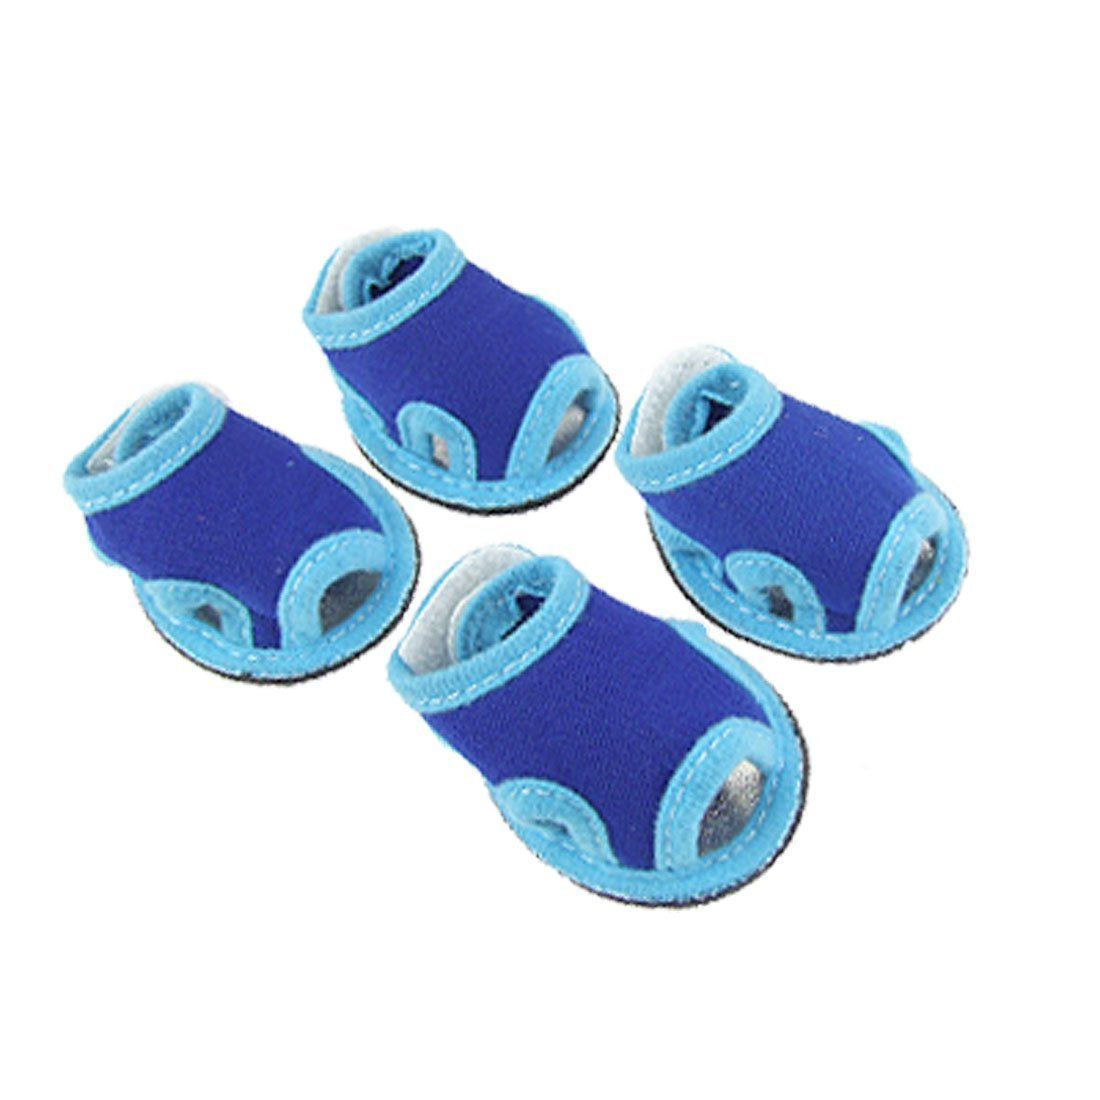 1Pc 4 x Pet Dog Puppy Sandals bluee shoes Sz 2 for Outdoor Walking